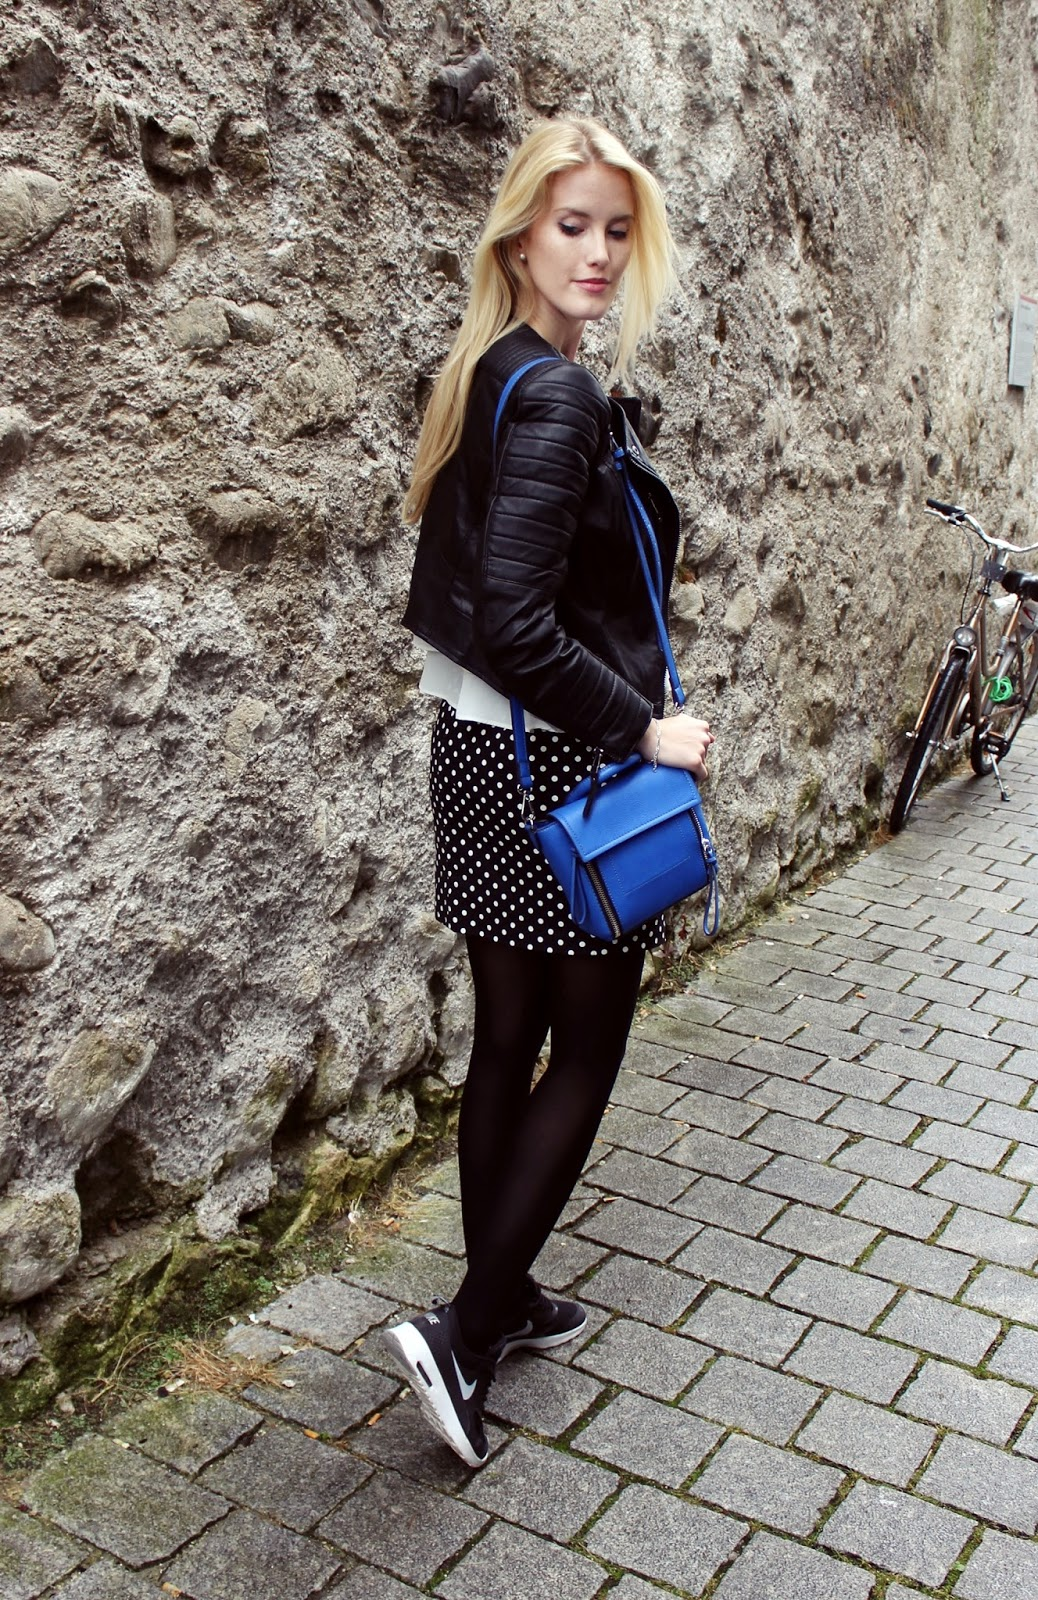 TheBlondeLion outfit Sassyclassy Bleistiftrock Nike AirMax Thea Punkte dots blue trapeze bag